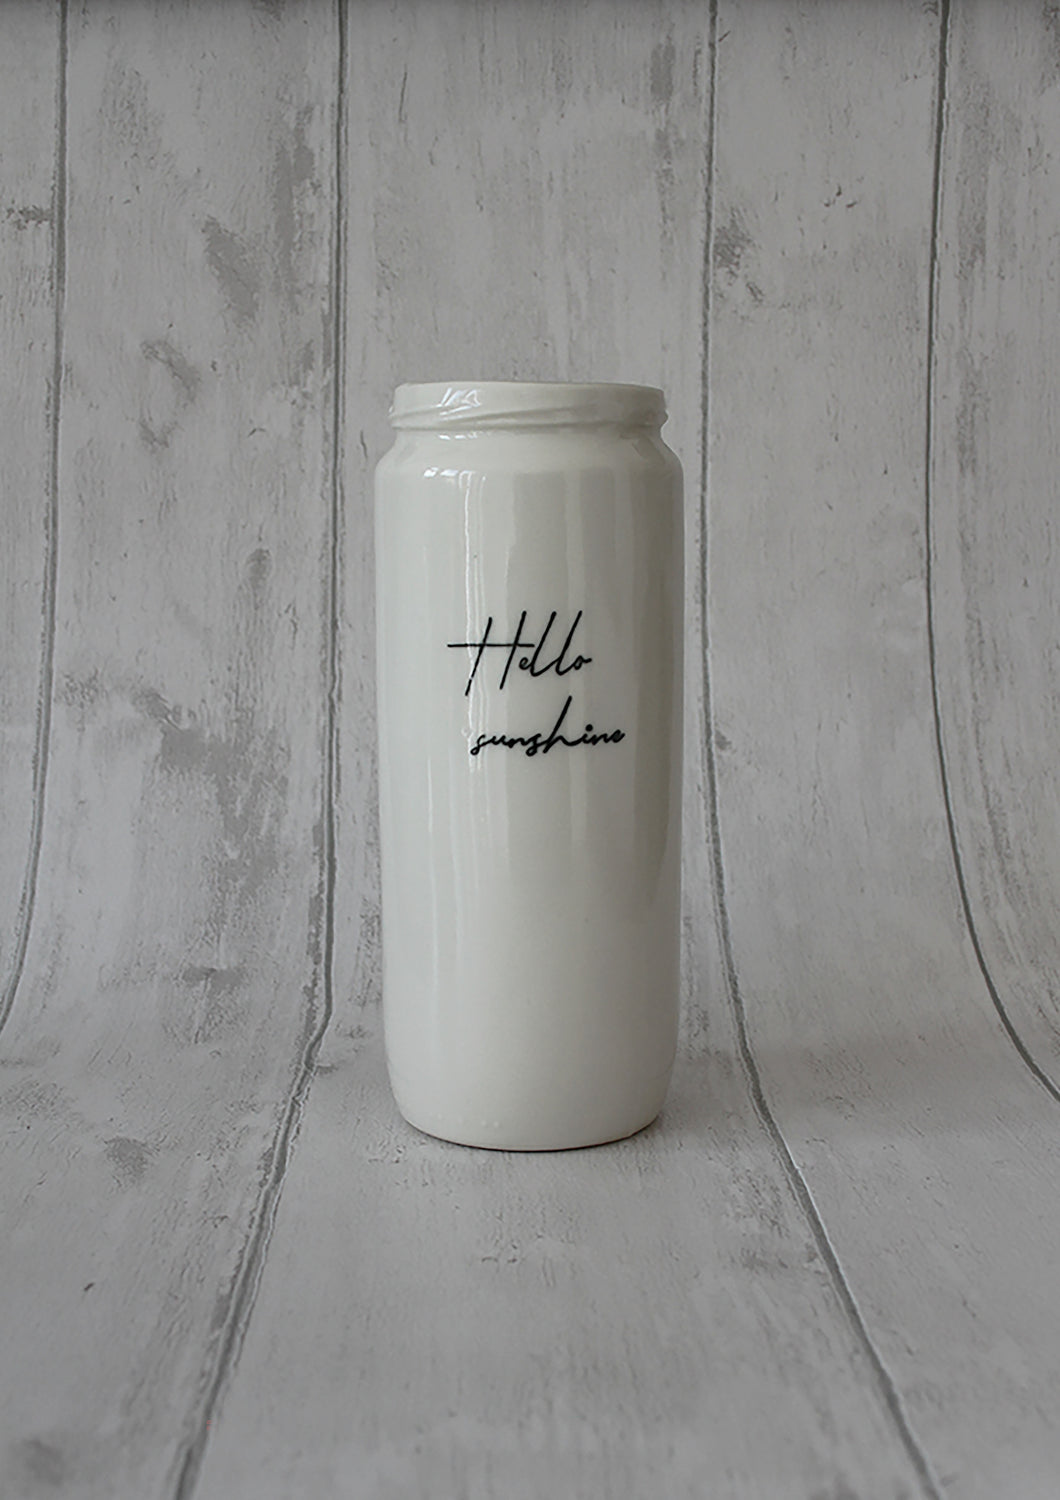 Porcelain Vase Jar - Hello sunshine